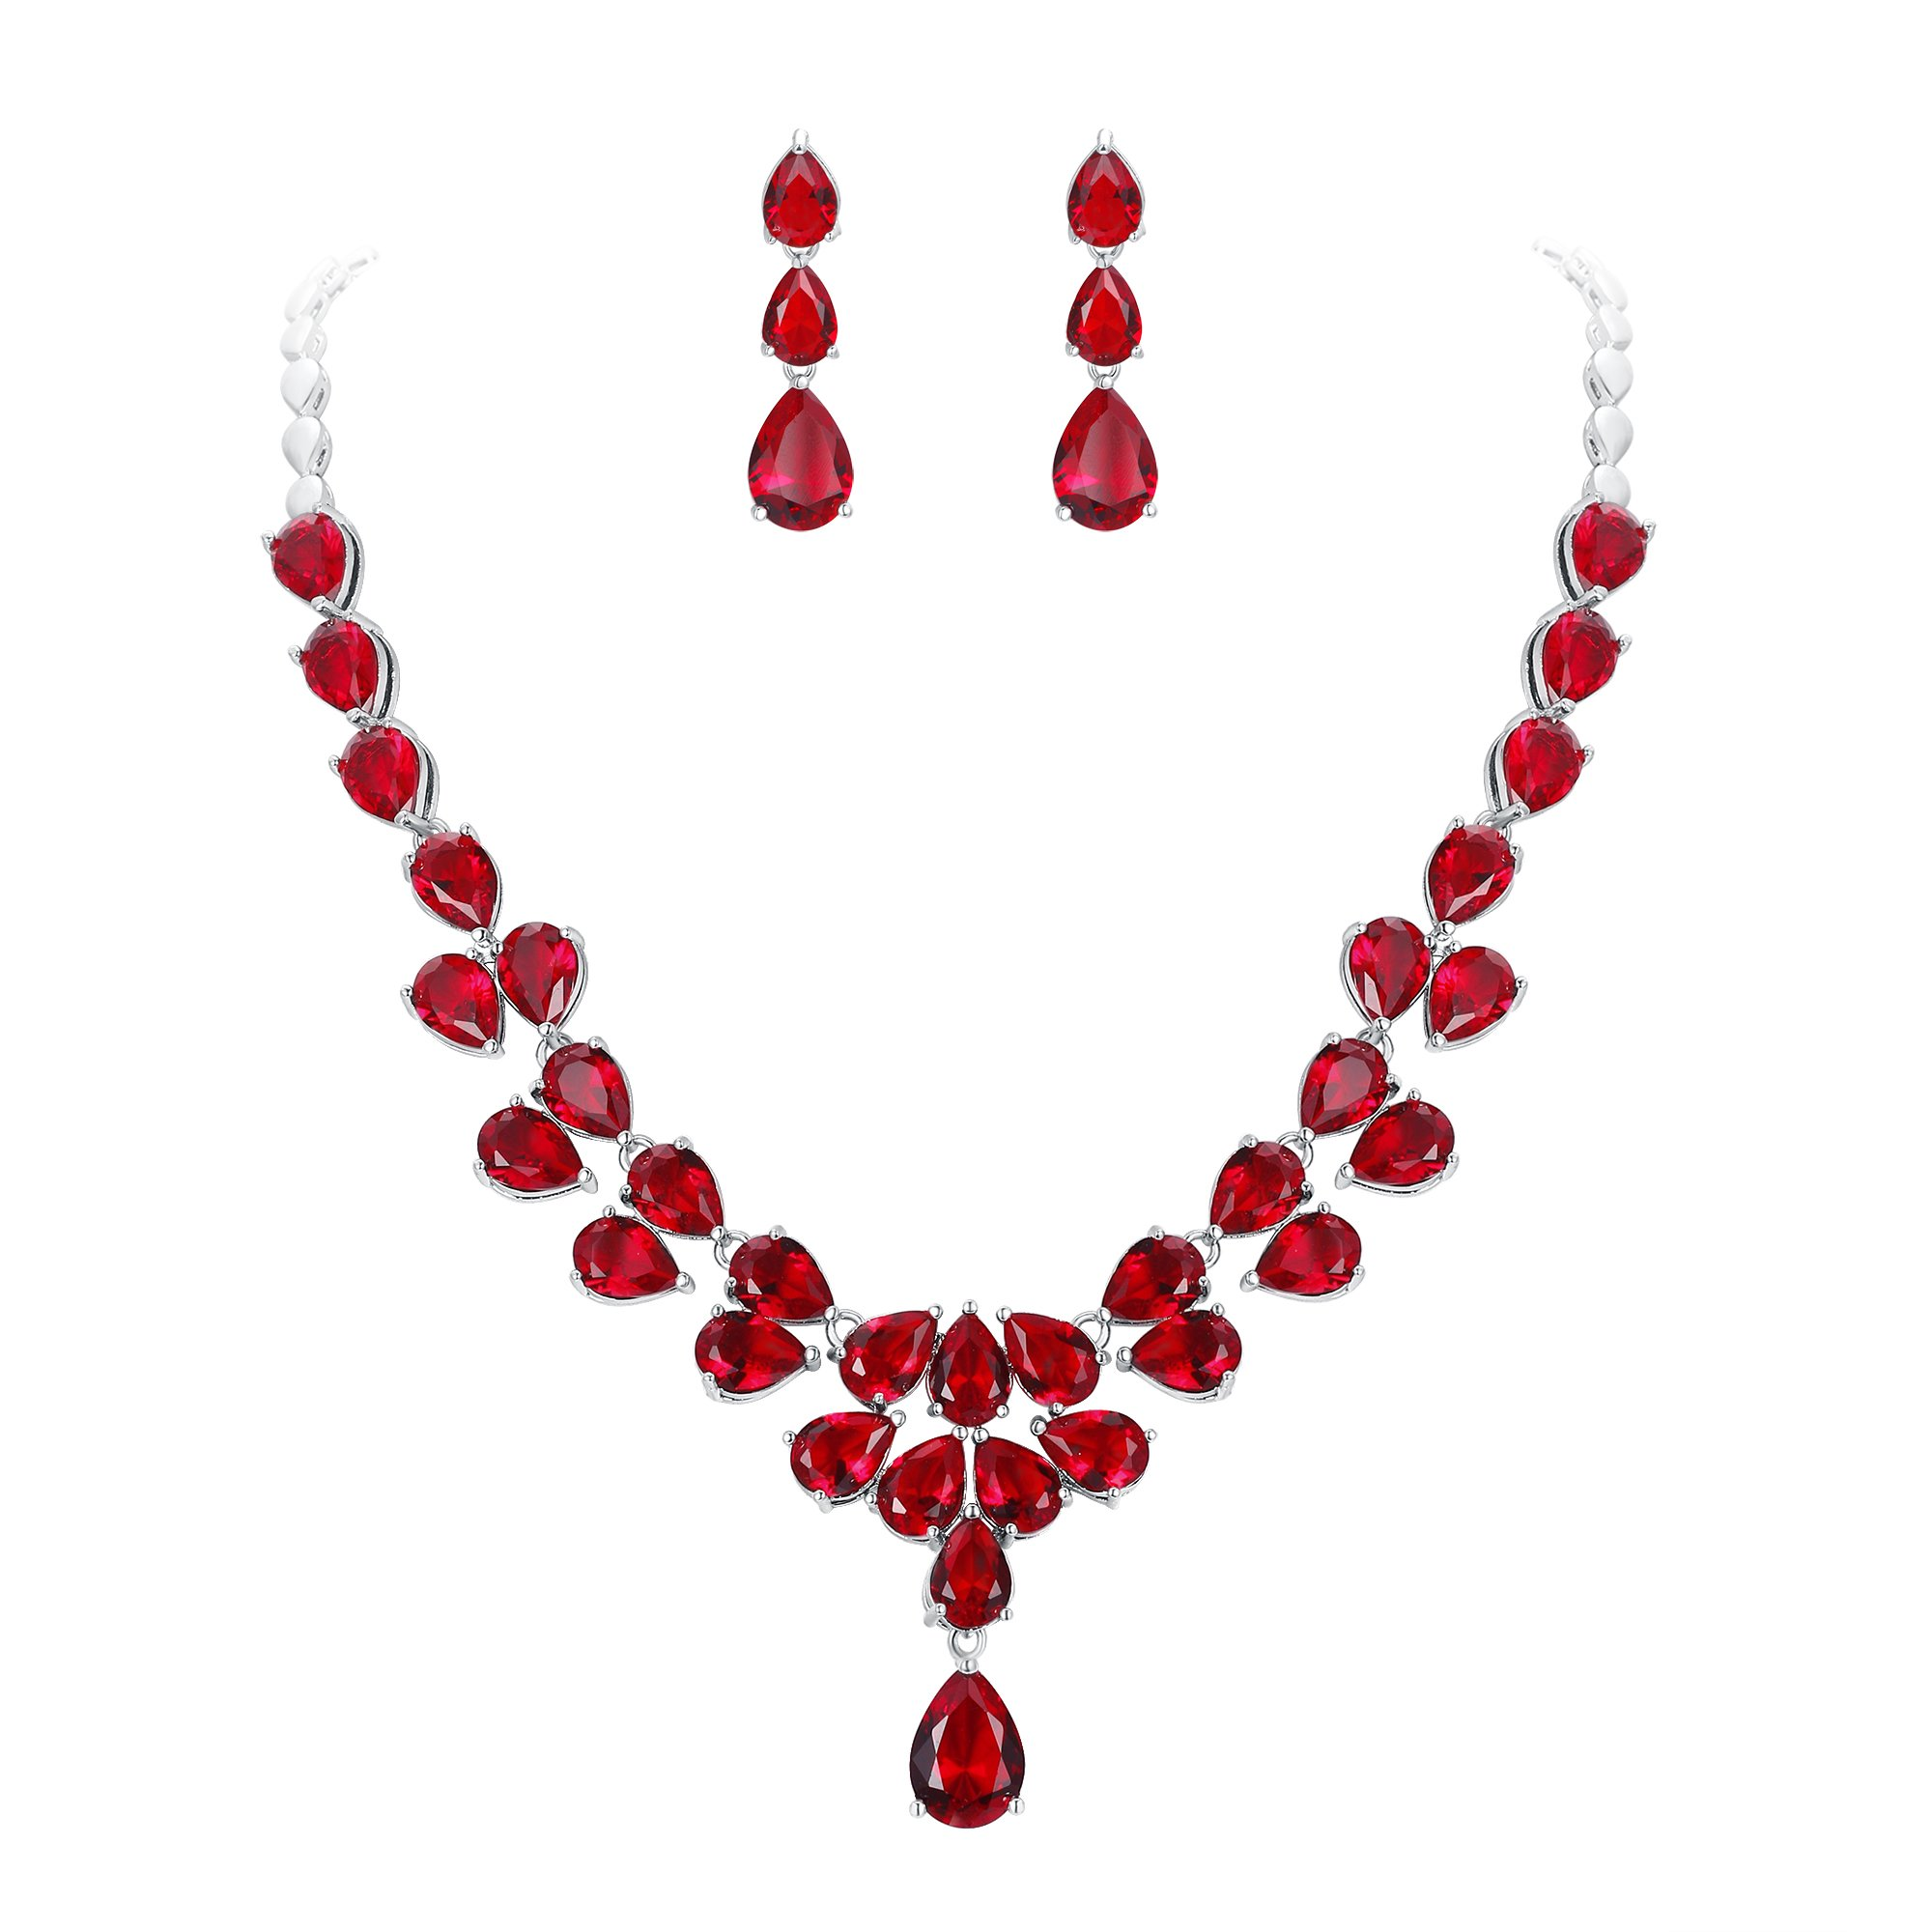 EleQueen Women's Wedding Bridal Jewerly Sets CZ Teardrop Dangle Earrings Statement Necklace Costume Jewerly For Women Rubis